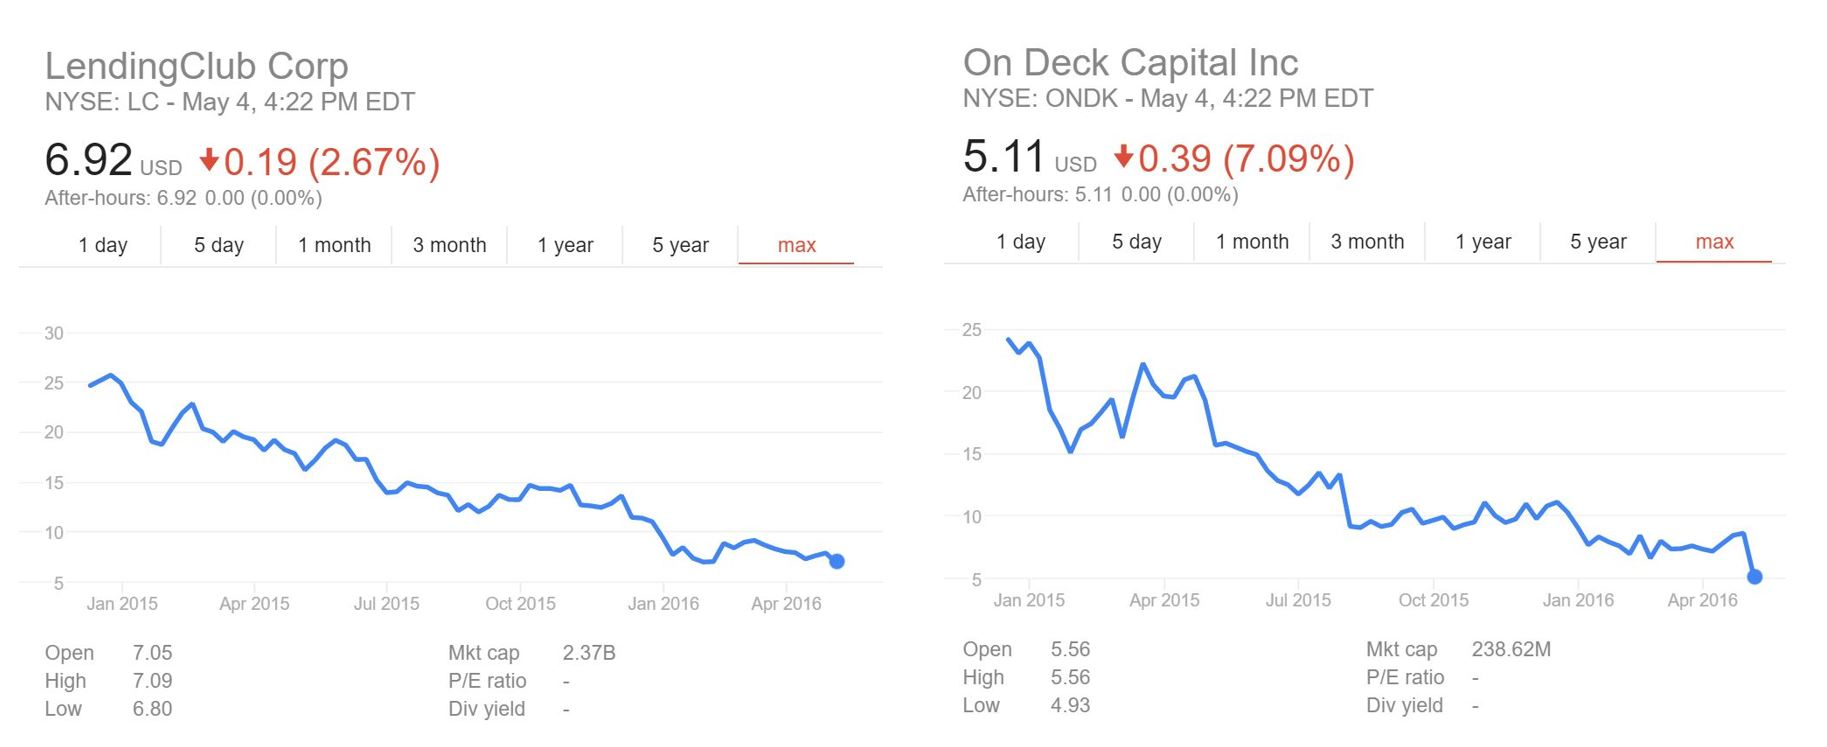 ondeck and lending club share prices